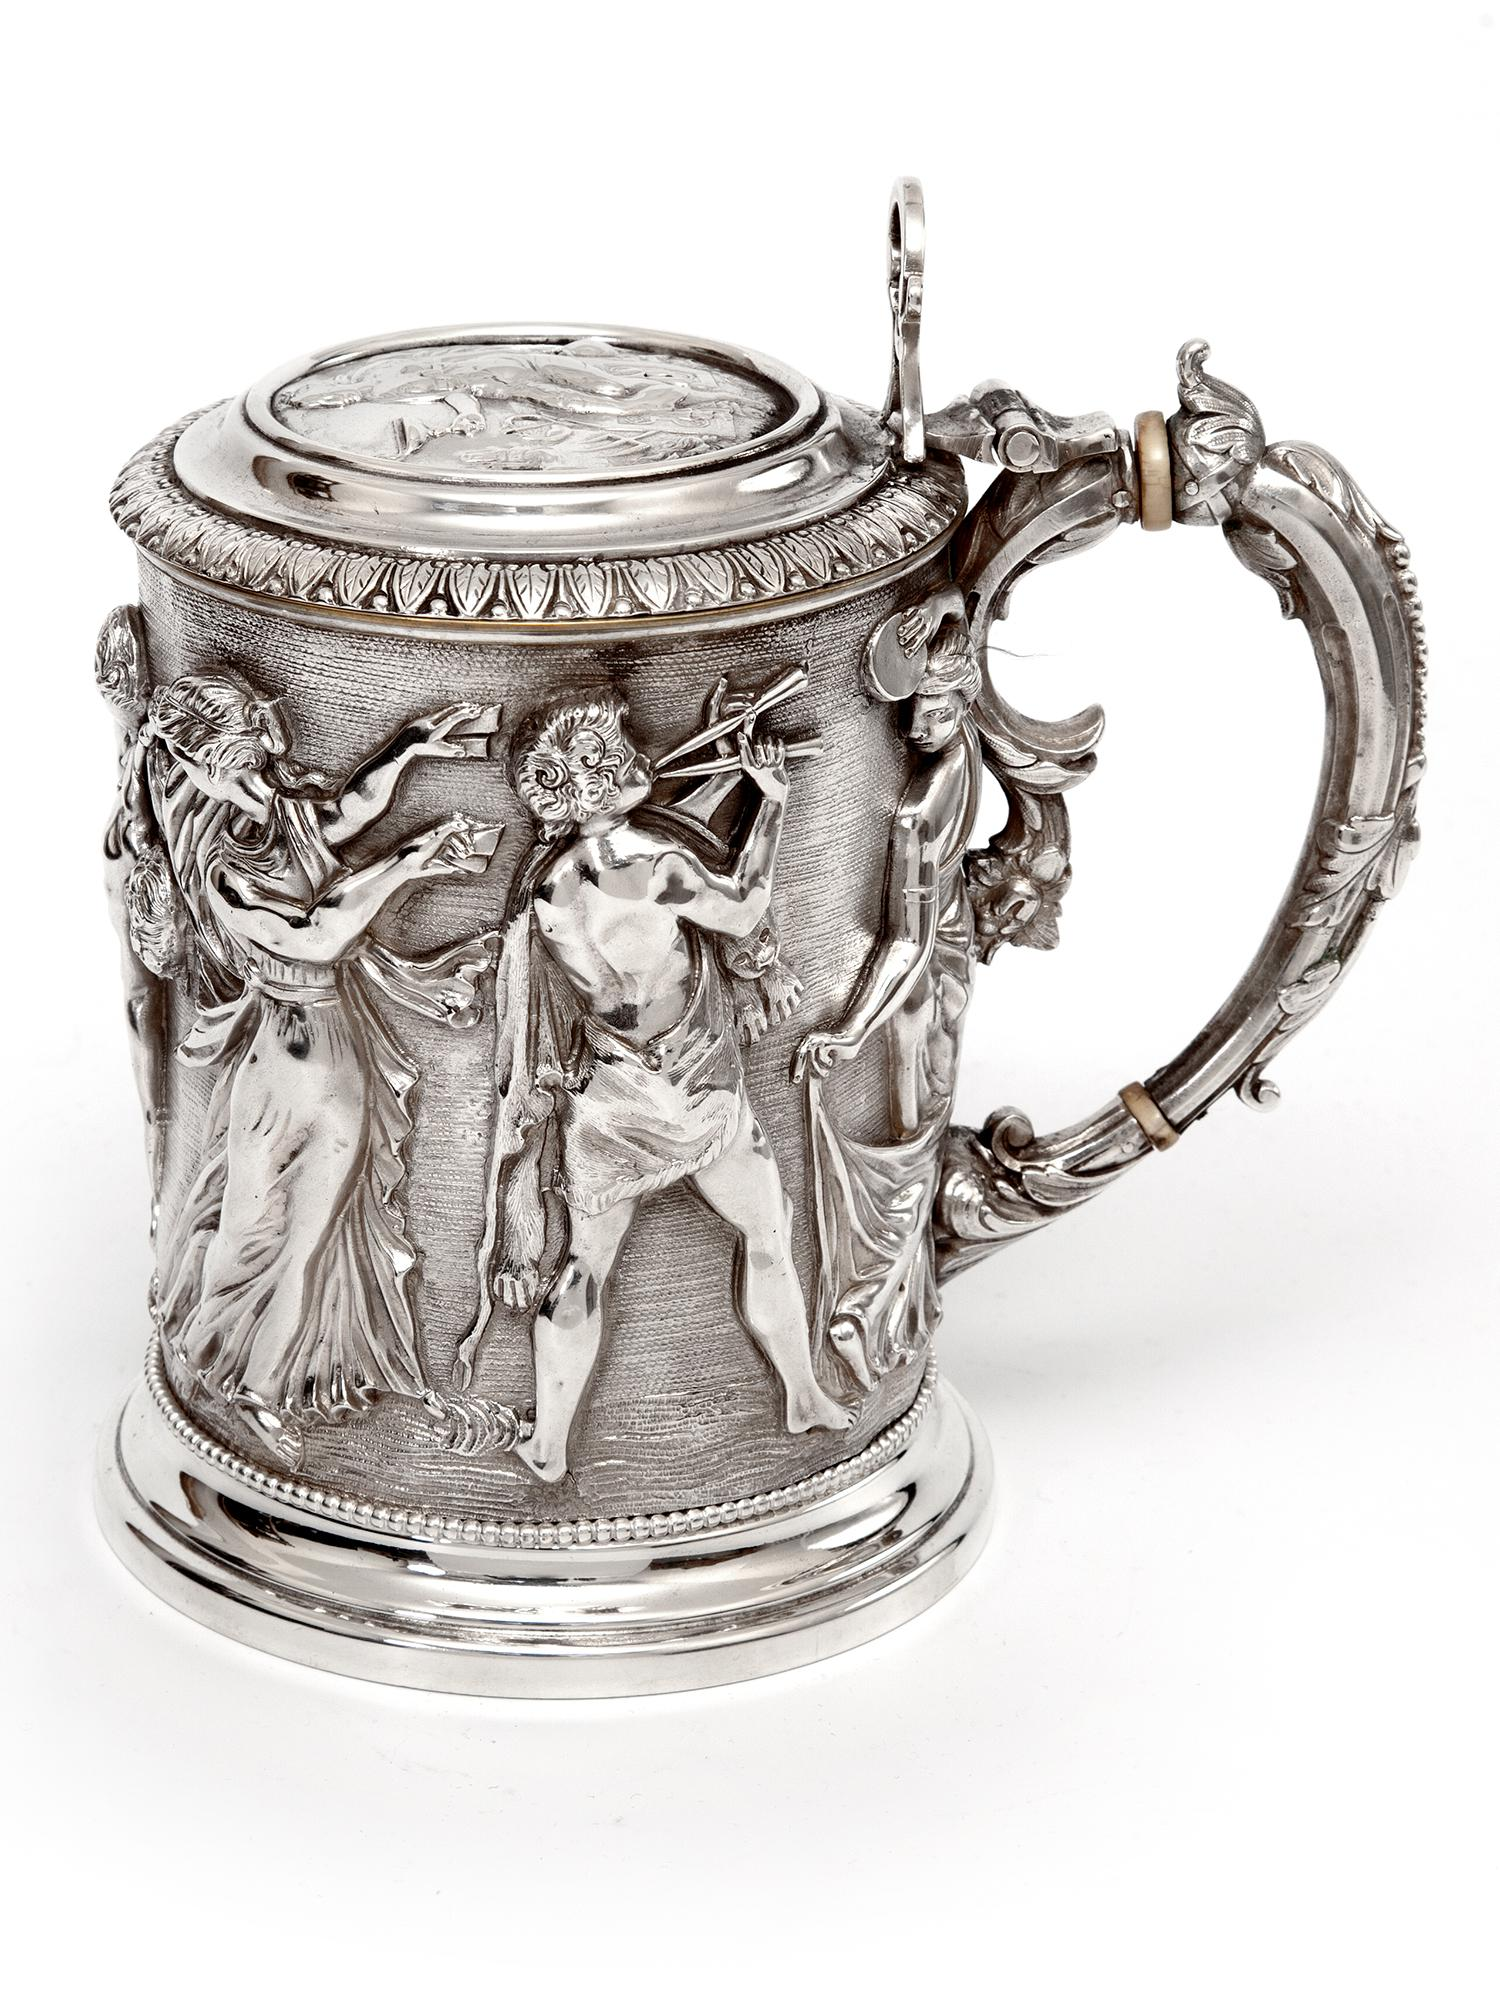 Piers Rankin Silver Antiques image (4 of 11)